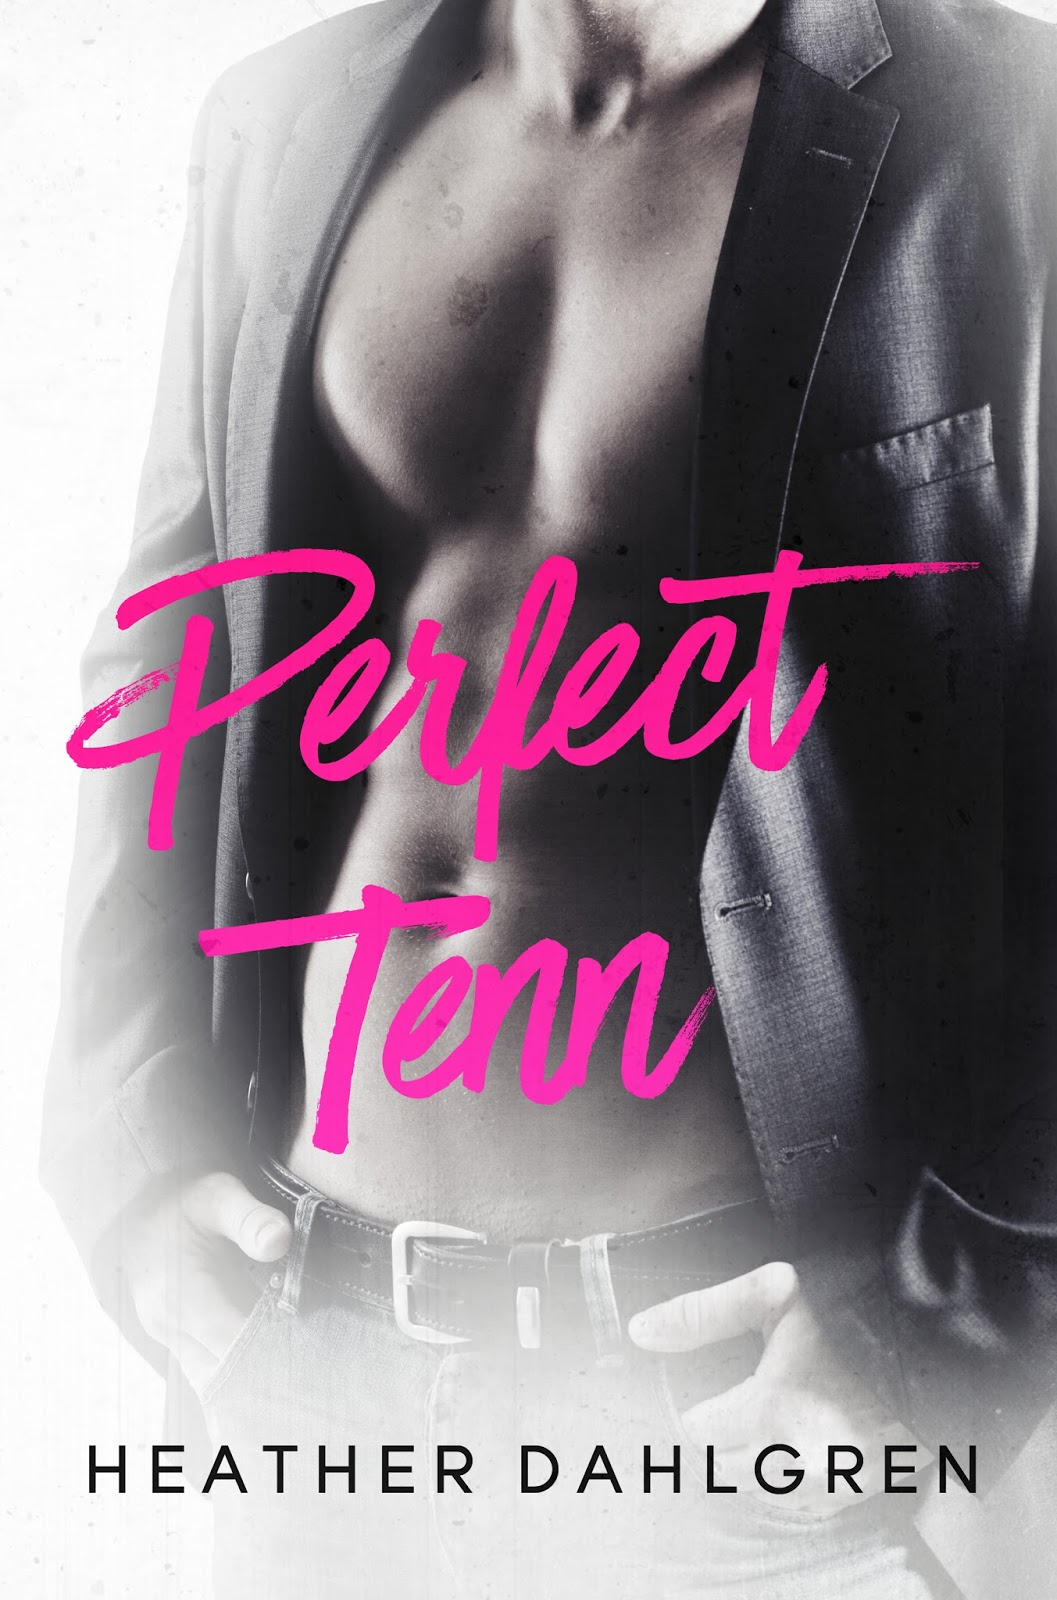 Book Cover Graphism Xr ~ Cover reveal perfect tenn by heather dahlgren